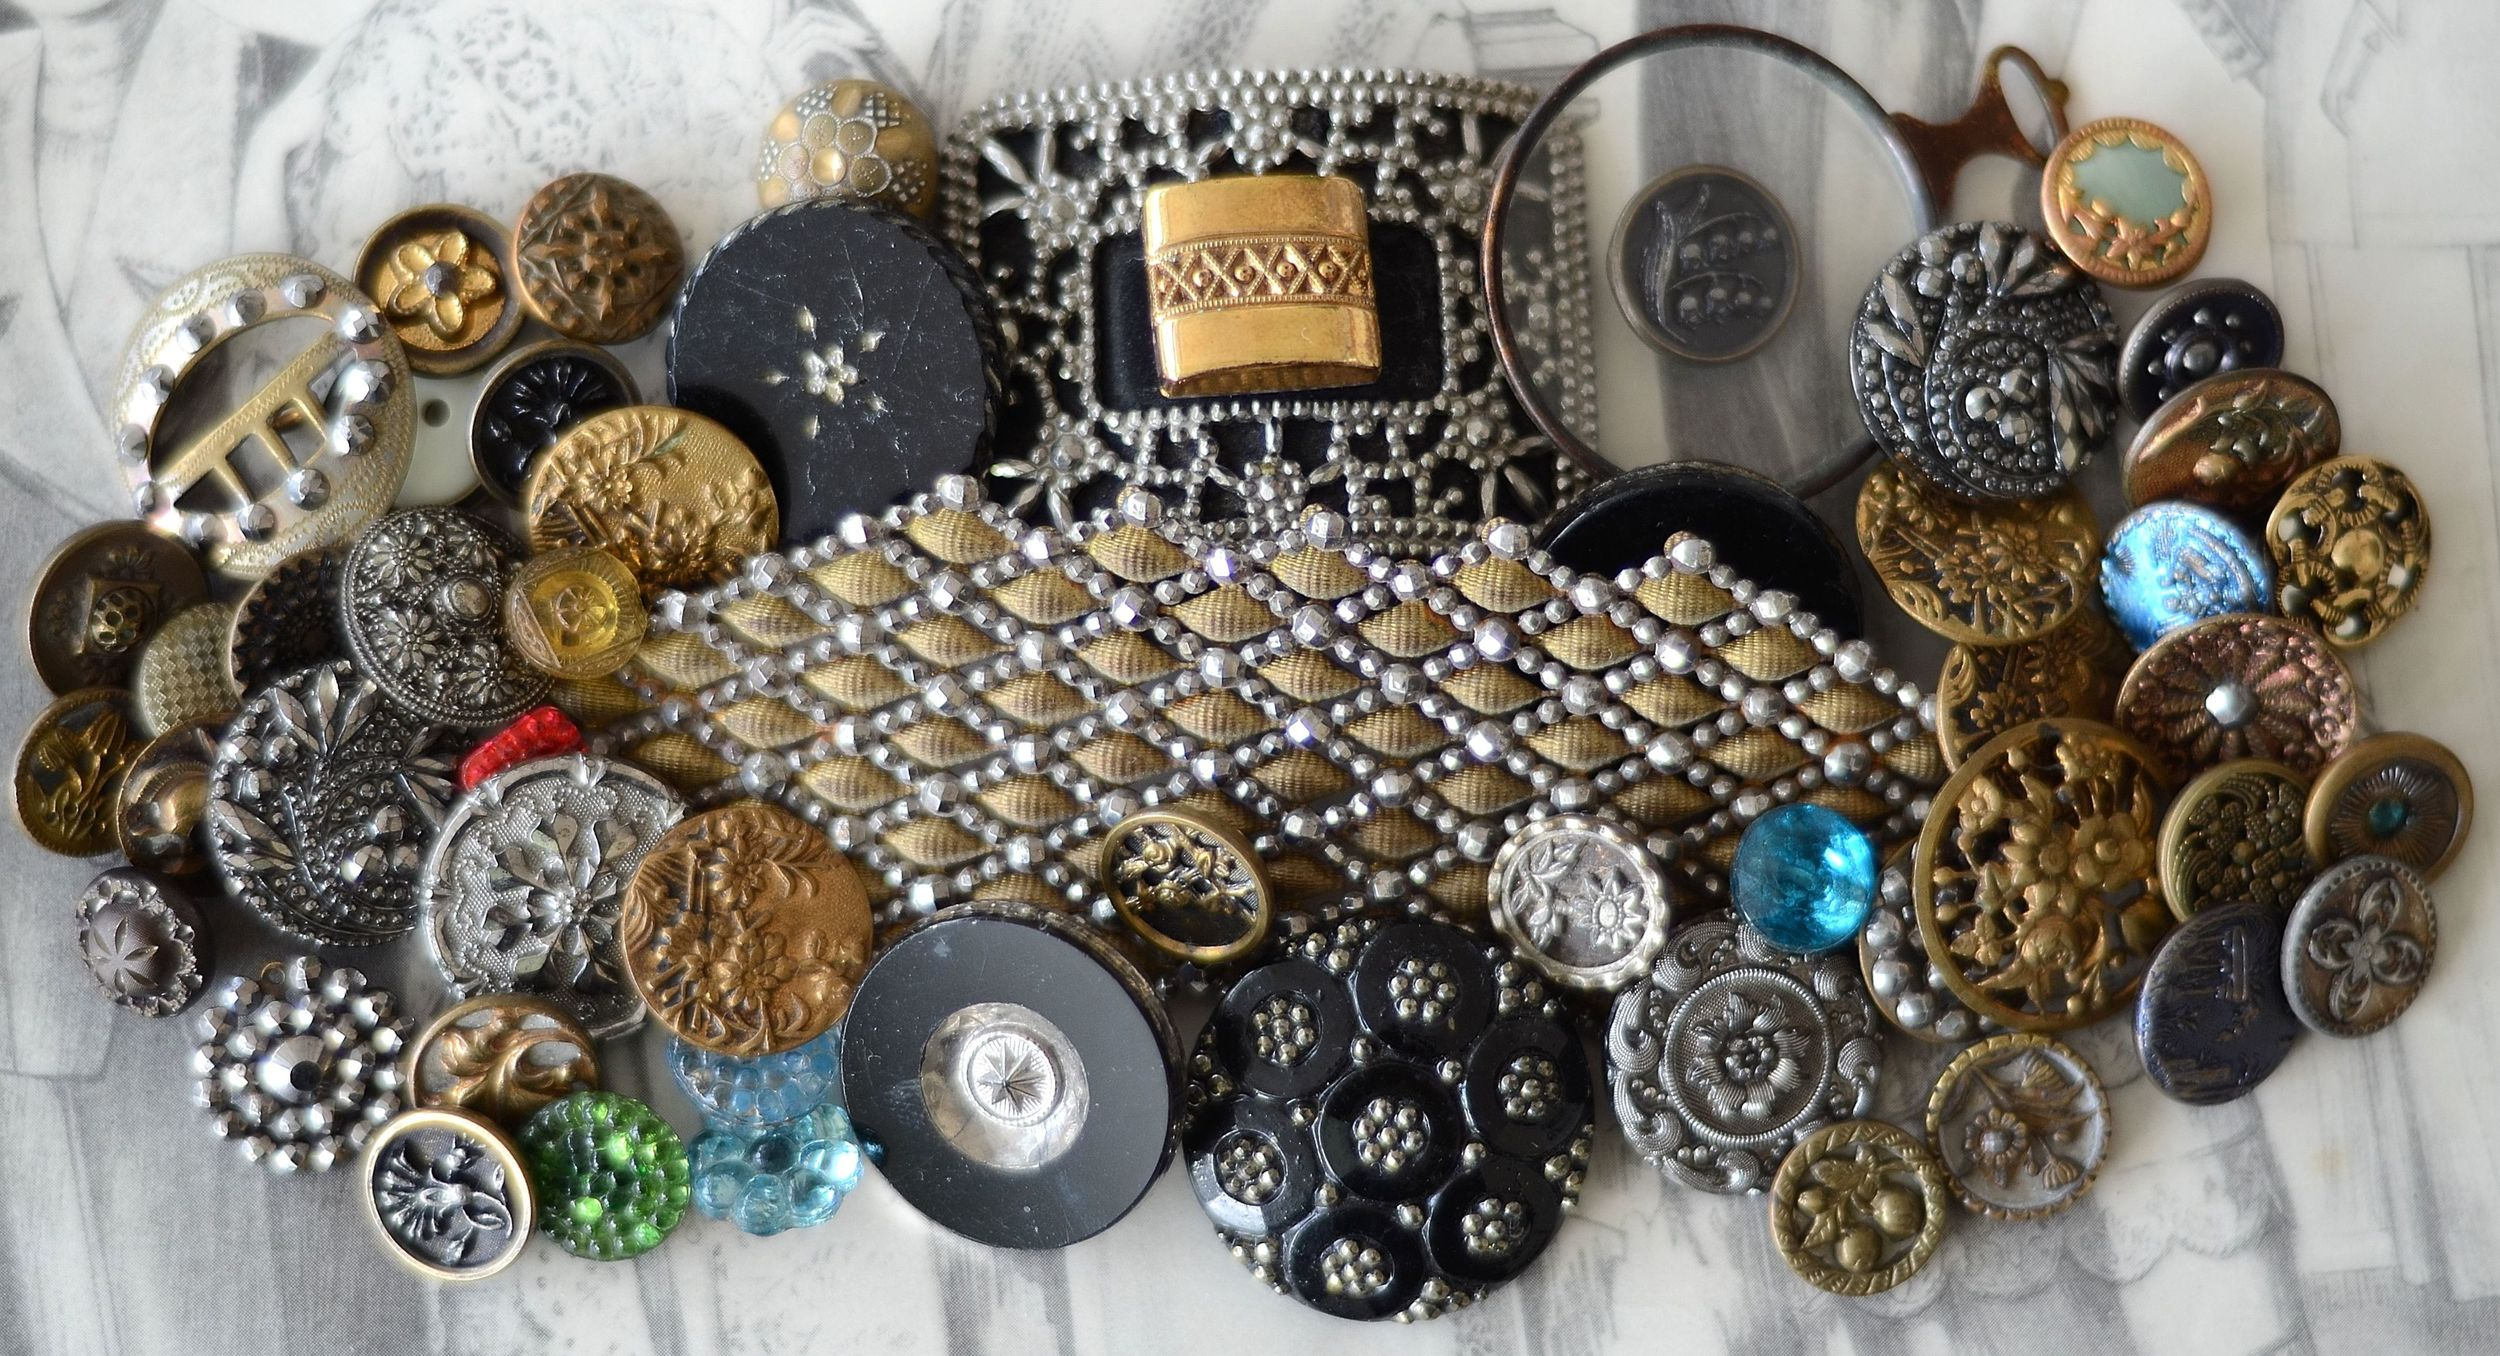 At MRS Designs, we use beautiful vintage buttons in almost all of our products